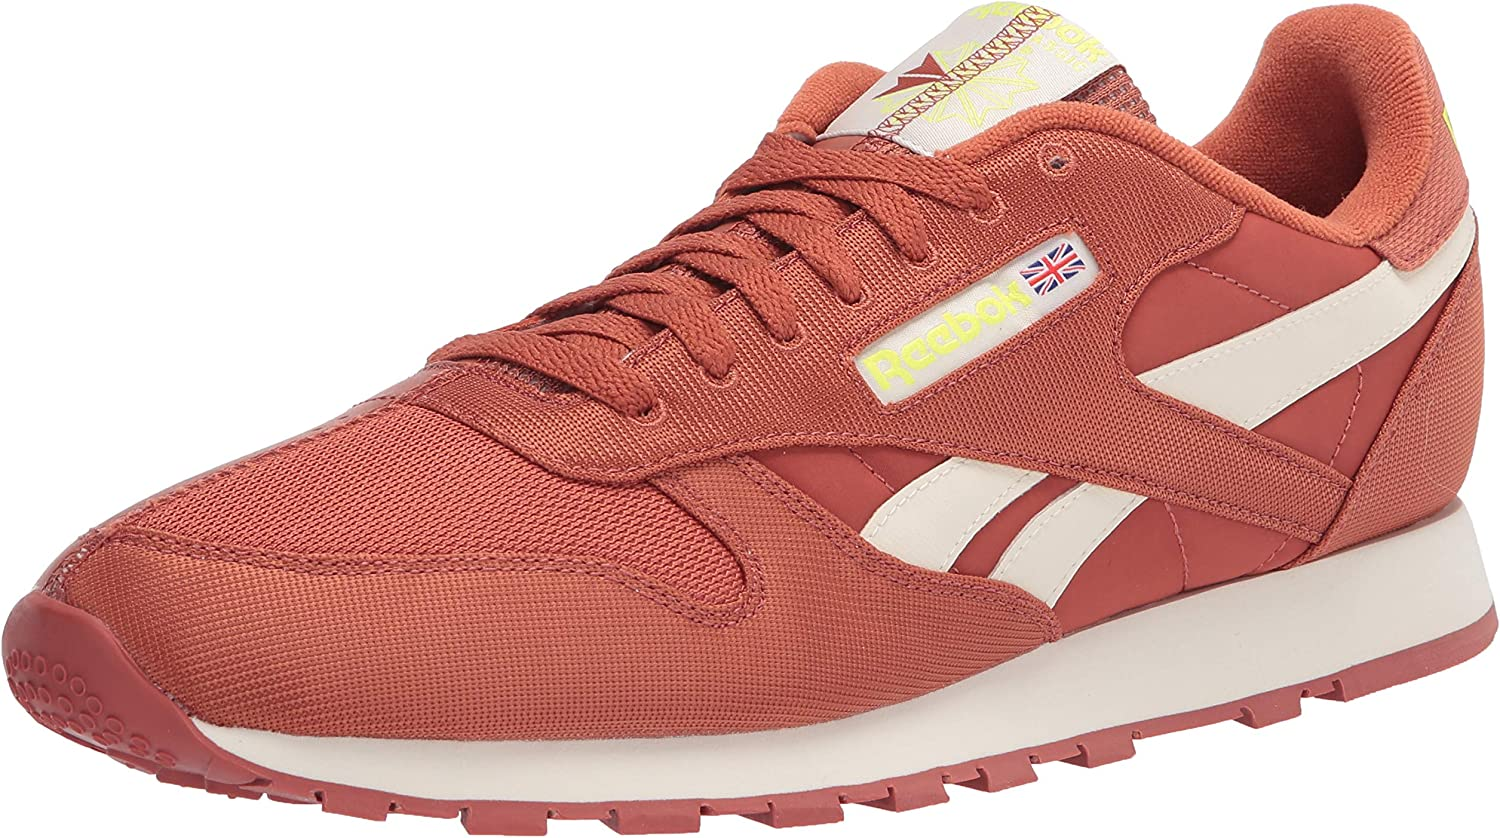 Reebok Unisex-Adult Classic Leather Cycle Sneaker 通信販売 信用 Ree